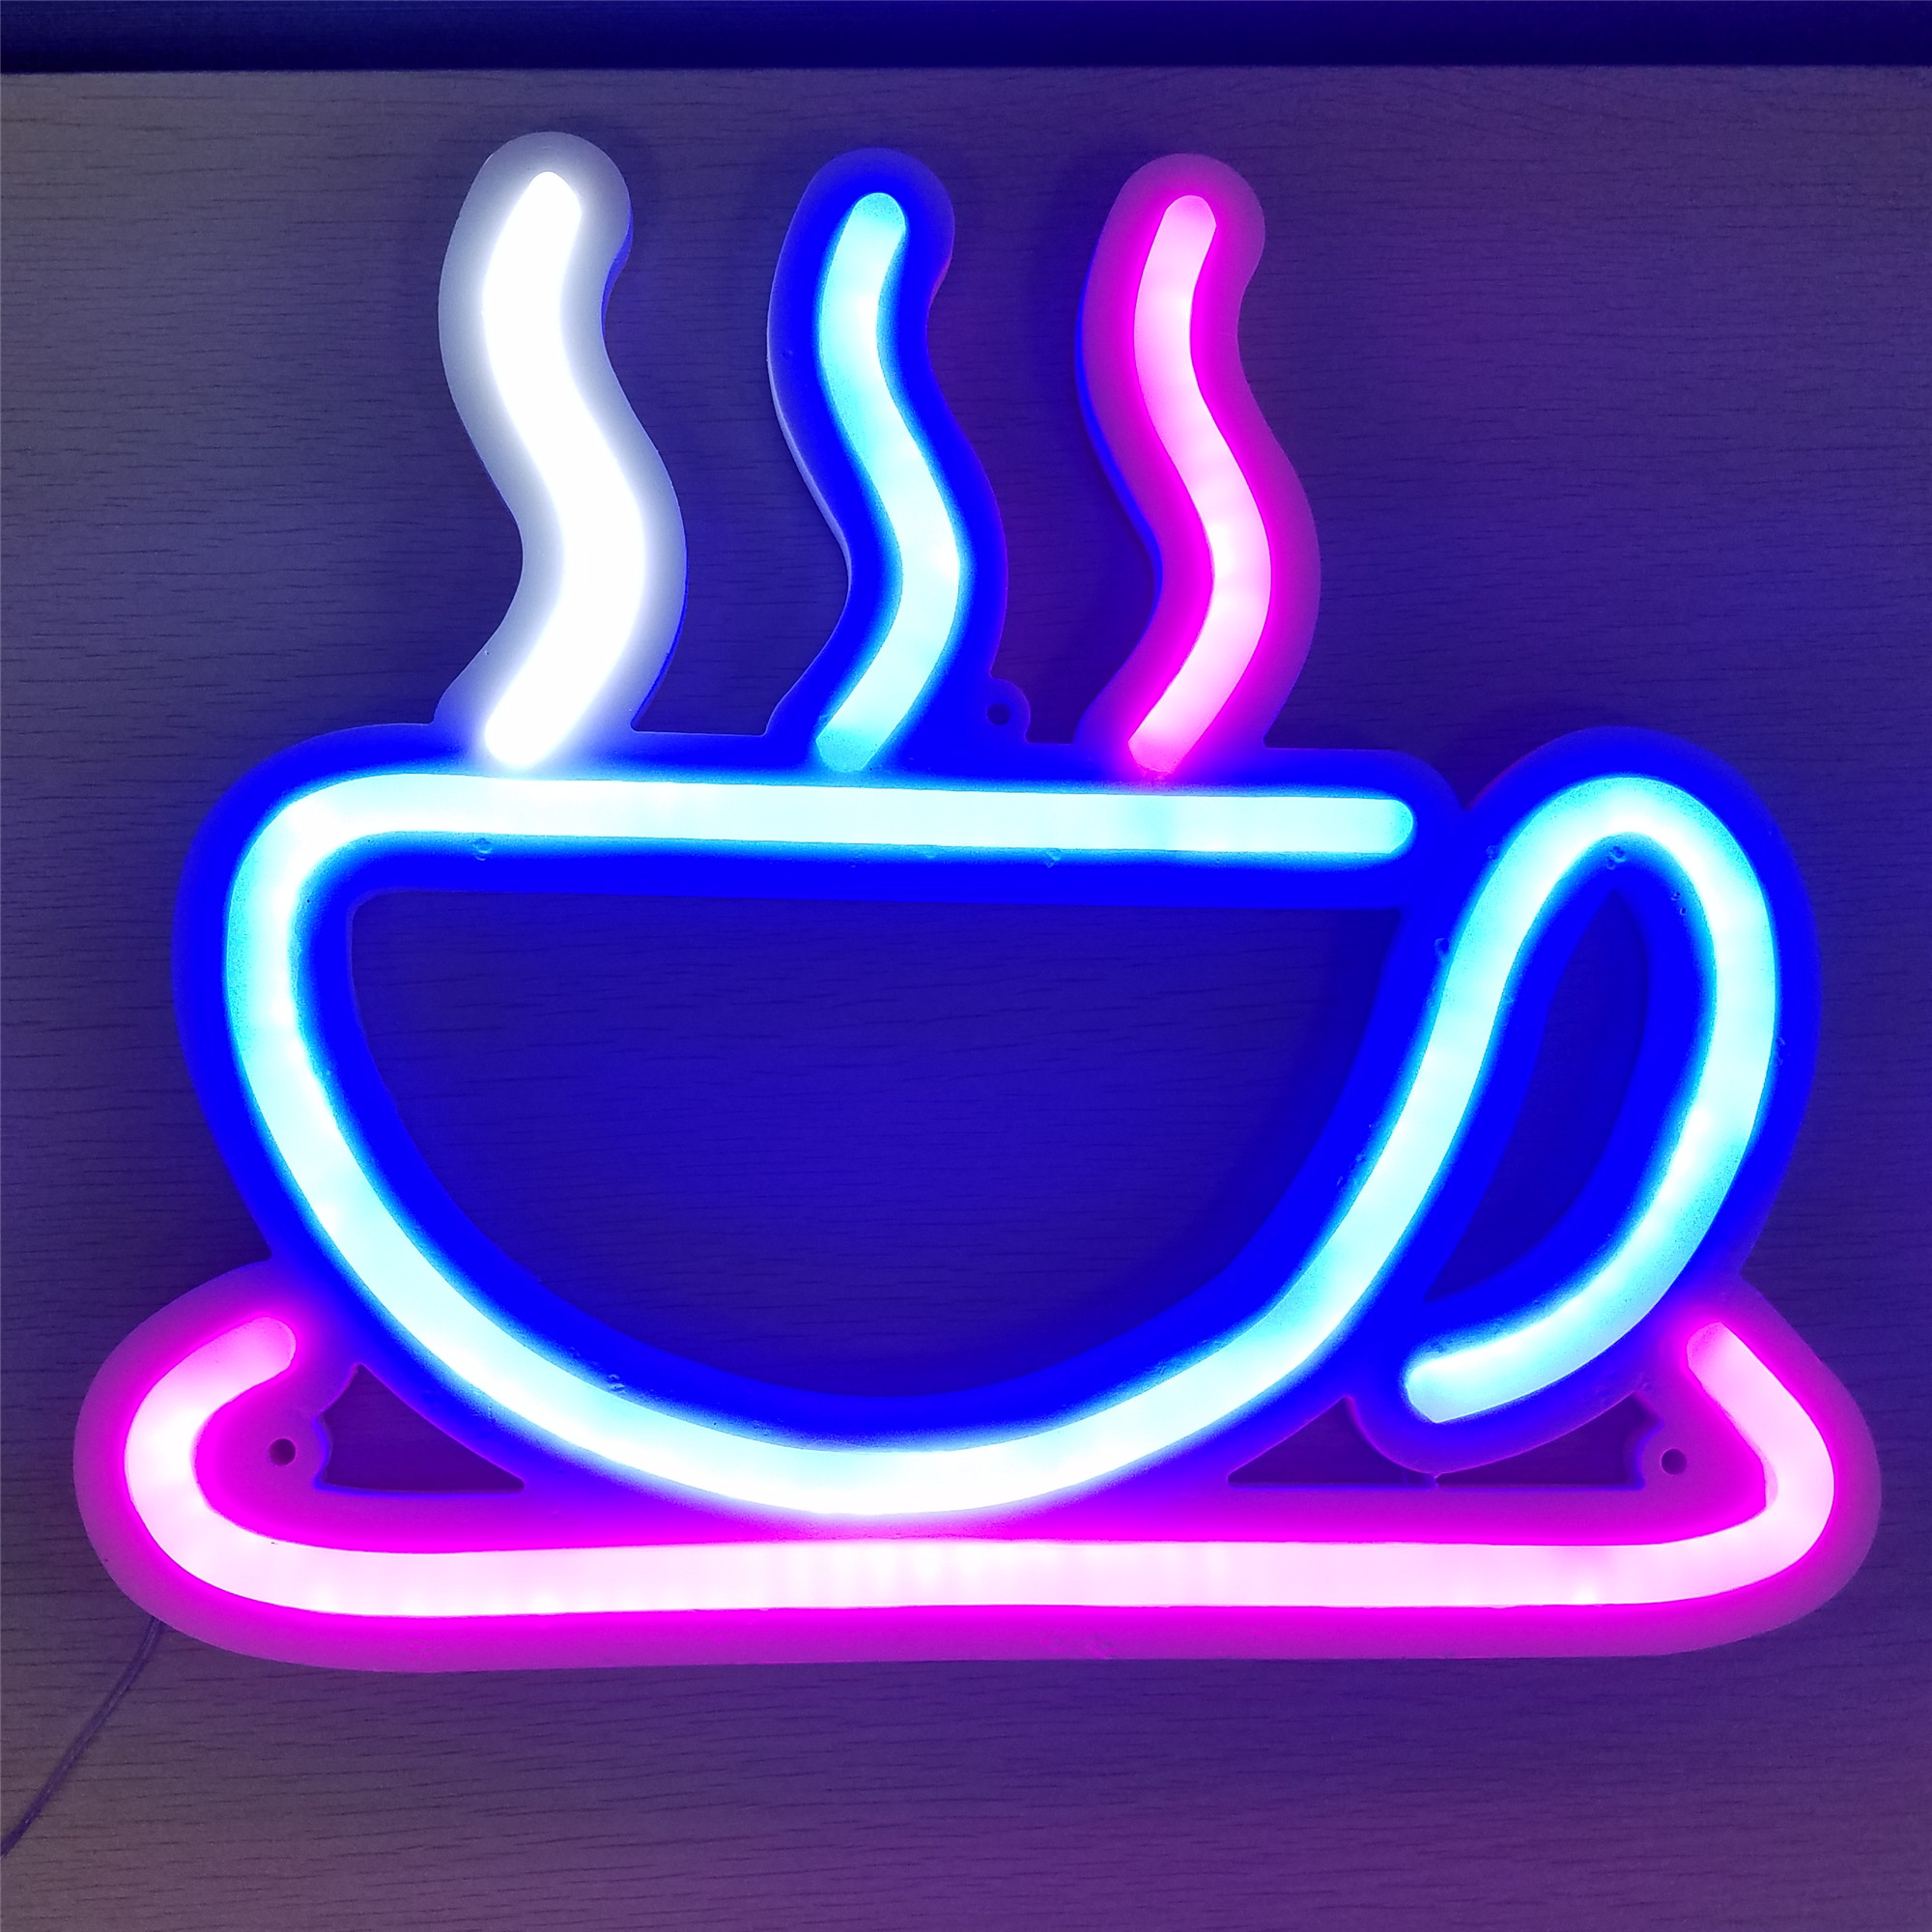 12 V 24 V Iklan Outdoor Indoor Dekoratif Programmable Kopi Murah Membuka Bir Bar Toko Pantai Custom LED Buka Neon lampu Sign